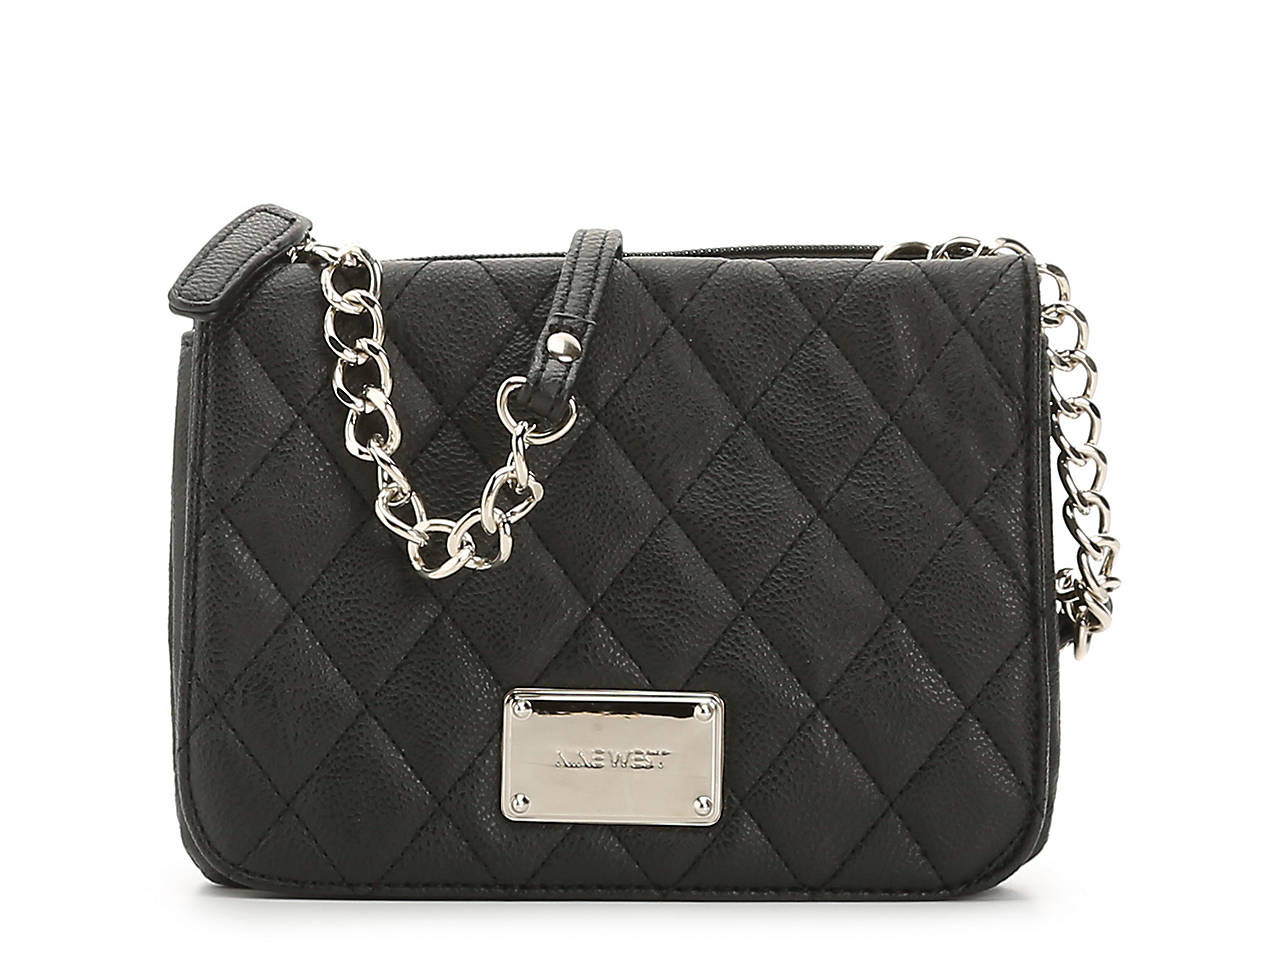 a75f196d1 Nine West HighBridge Crossbody Bag Women's Handbags & Accessories | DSW